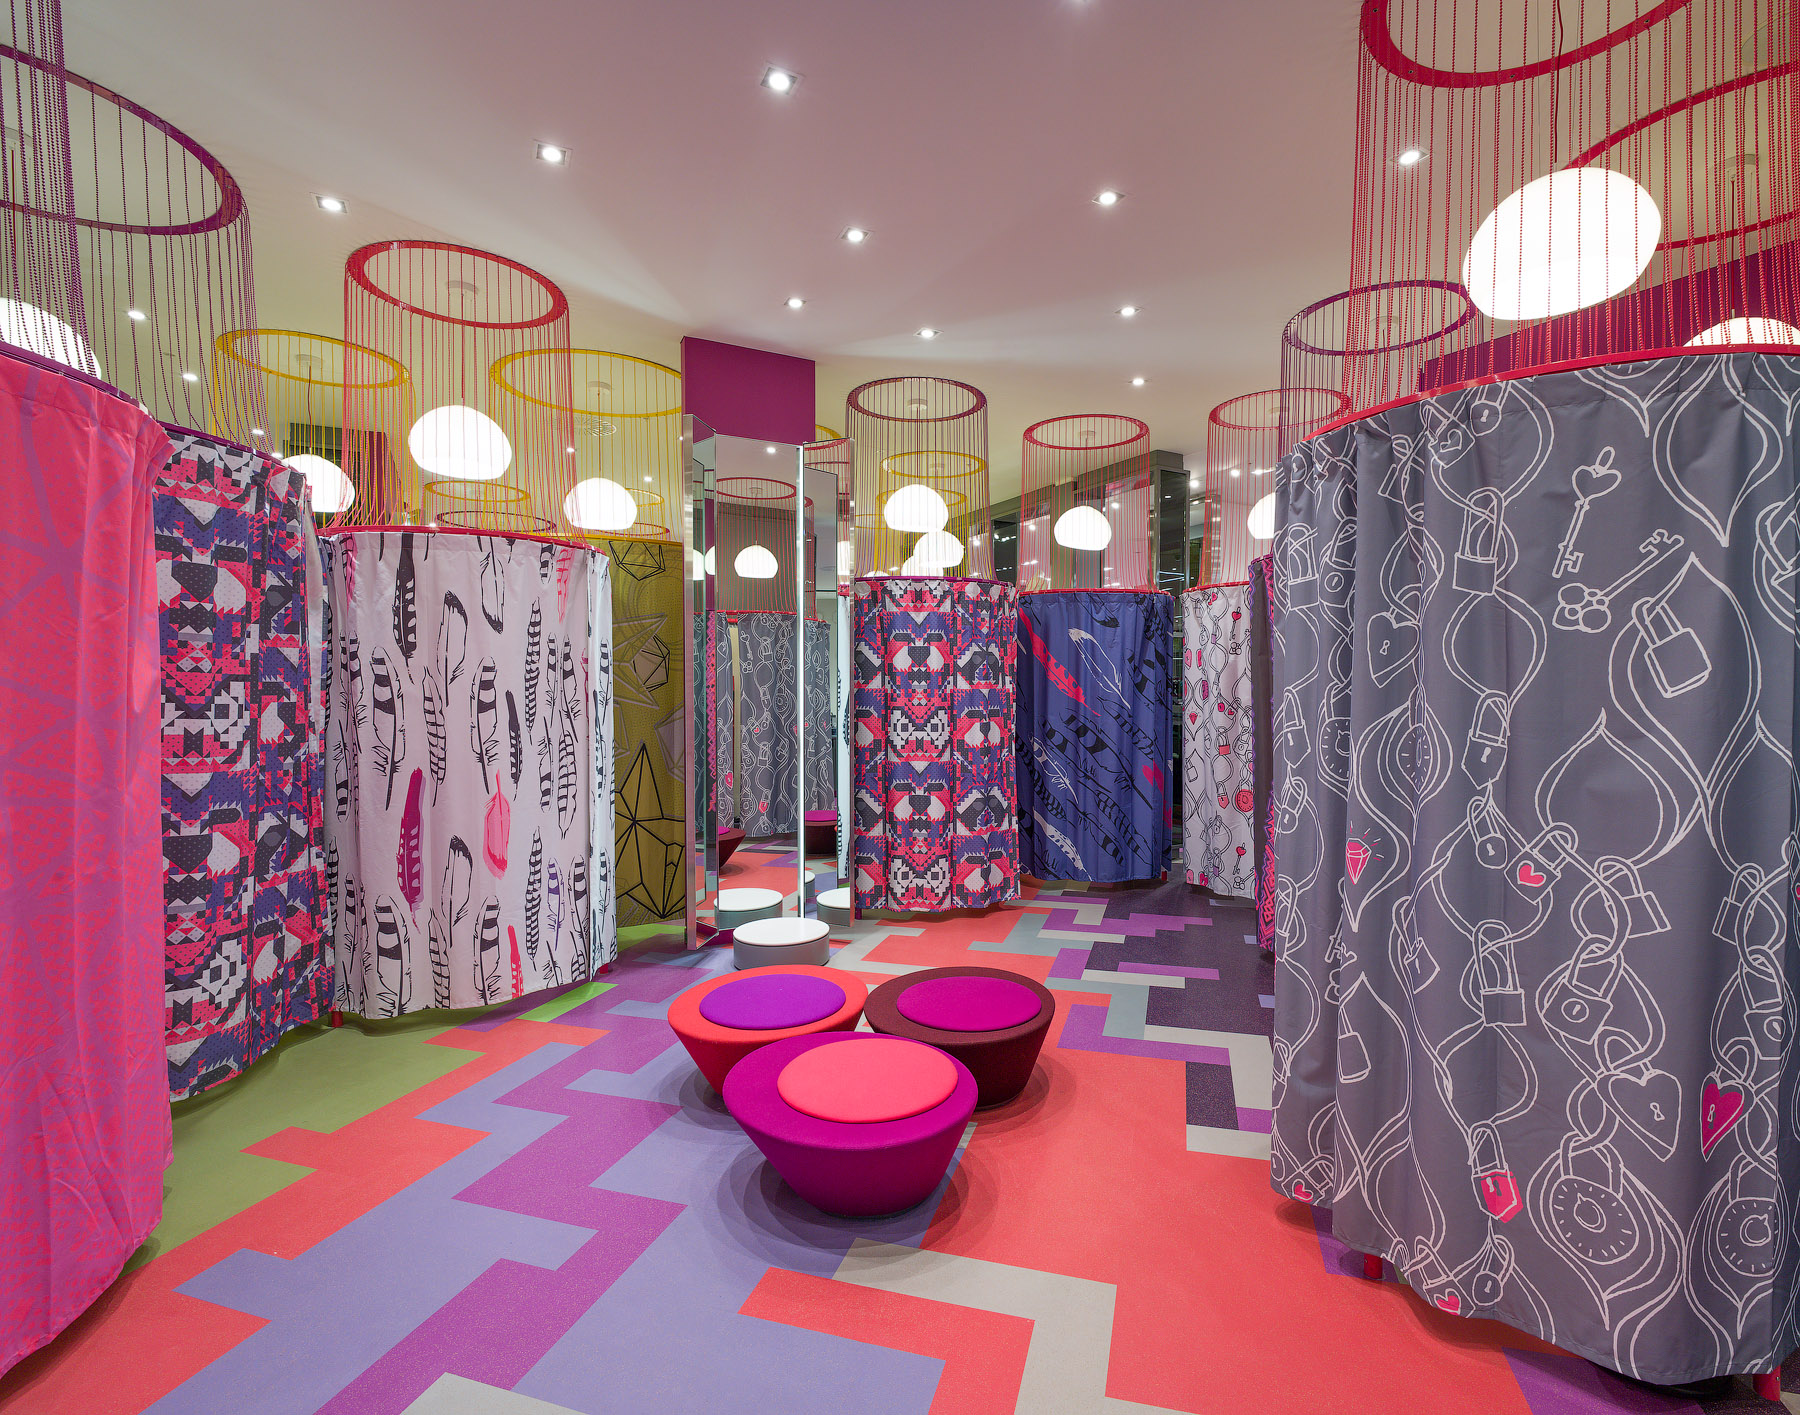 La Maison Simons fitting room with patterned curtains and floor in purple, pink, and orange